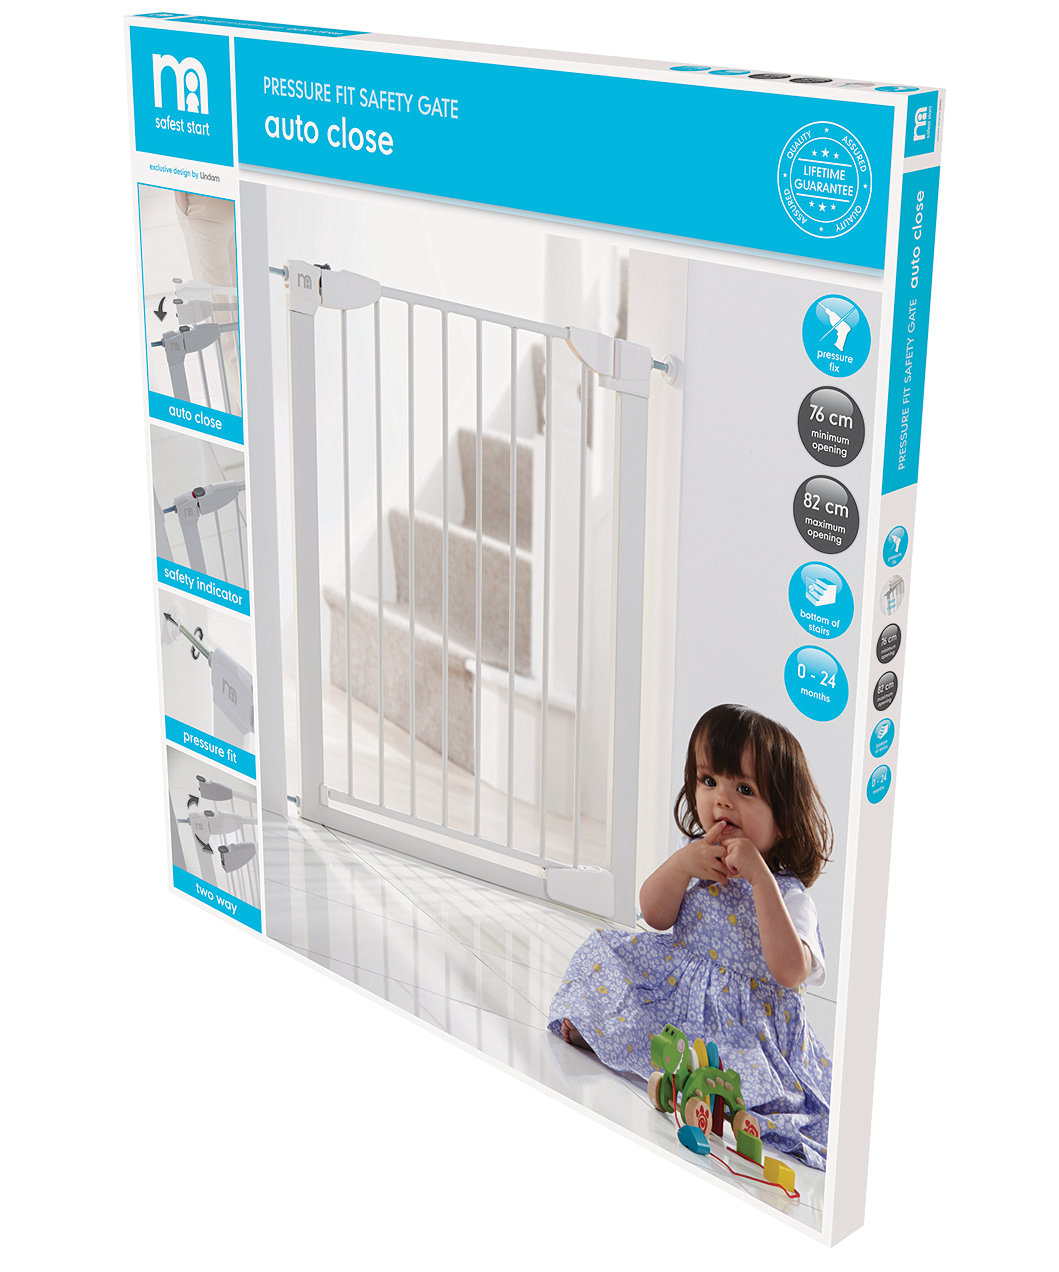 Mothercare Safest Start Auto Close Pressure Fit Safety Gate